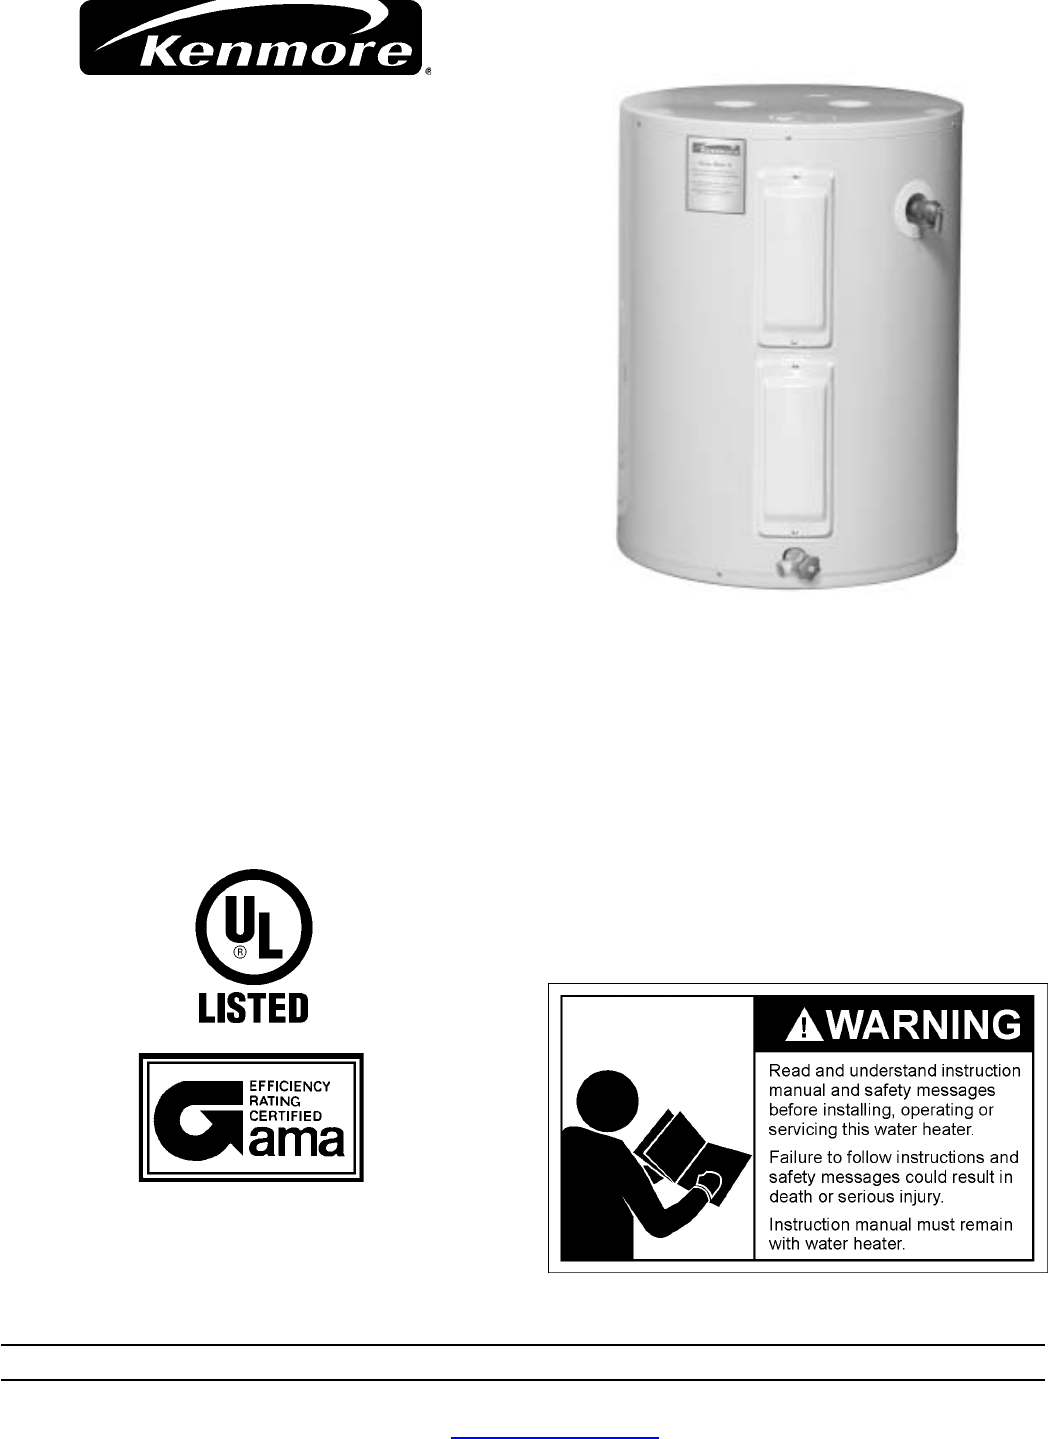 Kenmore 153326260 184732 000 user manual water heater manuals and kenmore 153326260 184732 000 user manual water heater manuals and guides 1708573l ccuart Images